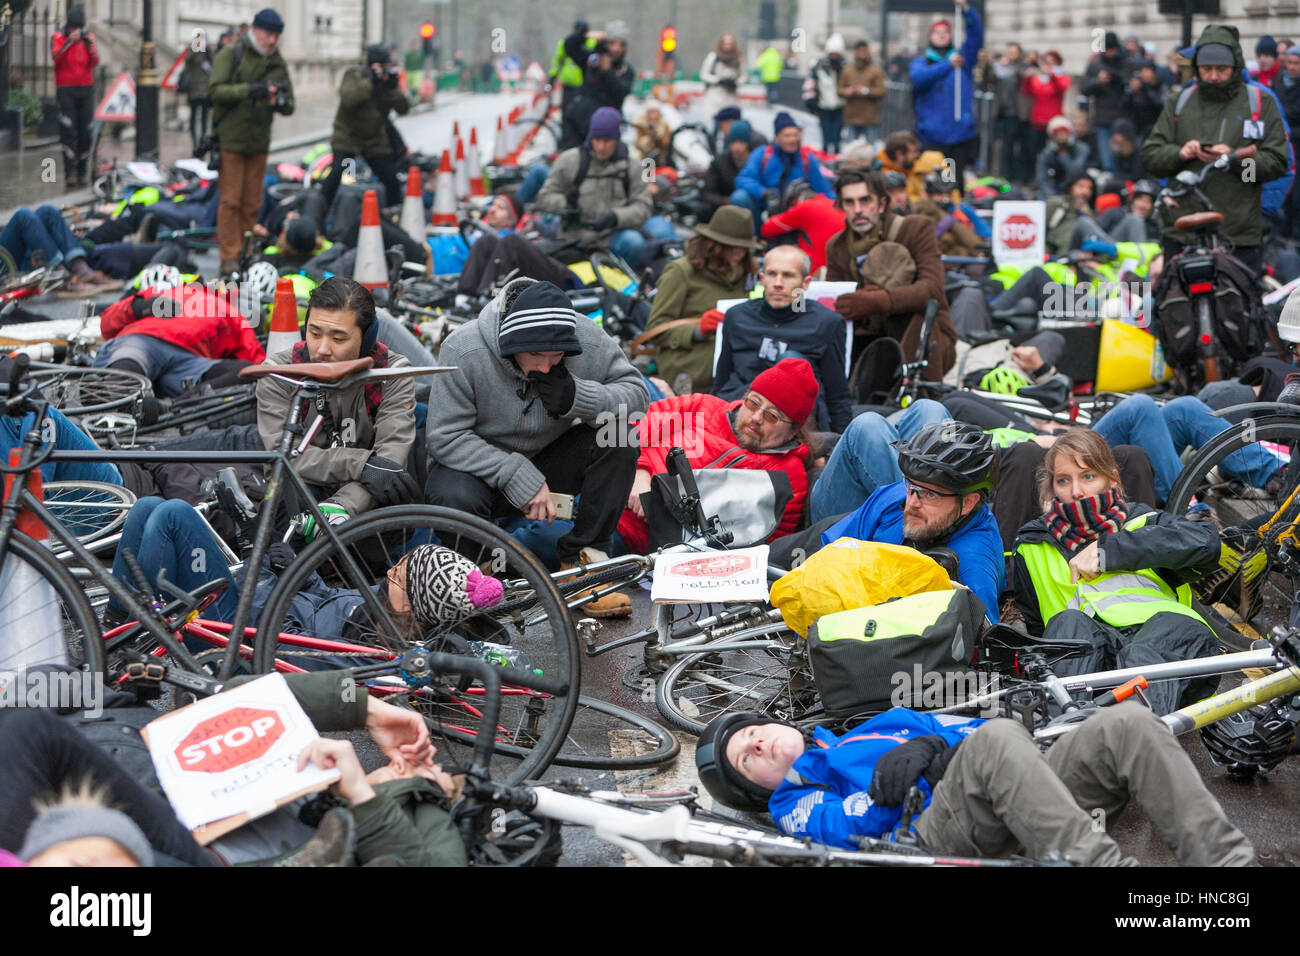 London, UK. 11th February 2017.  As air pollution kills thousands every year, hundreds of cyclists set out from Stock Photo